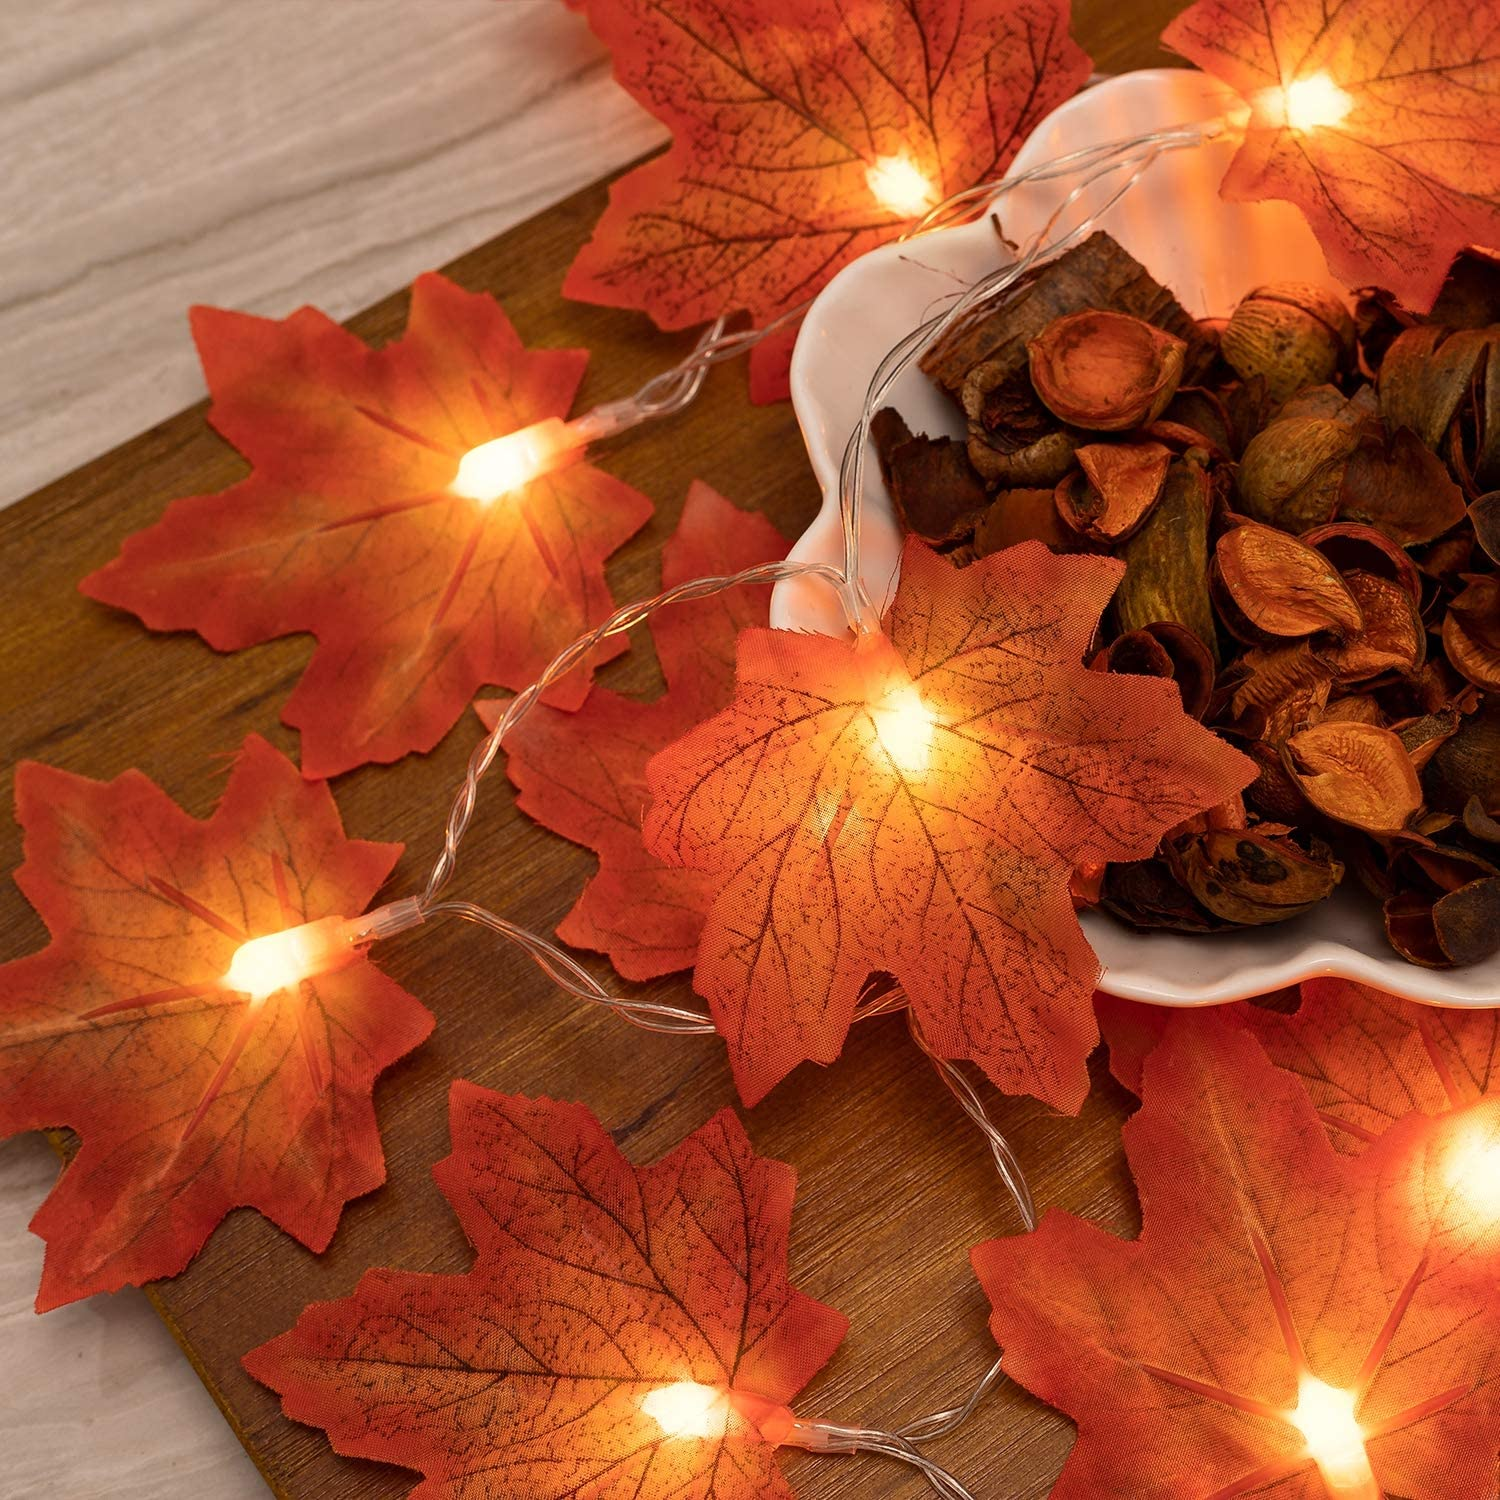 Maple Leaves Thanksgiving Lights for Fall Decorations, Garland String Lights with 20 LED, Battery Operated Lights for Outdoor Indoor Thanksgiving Decorations, 2 Modes Lights String for Fall Decor